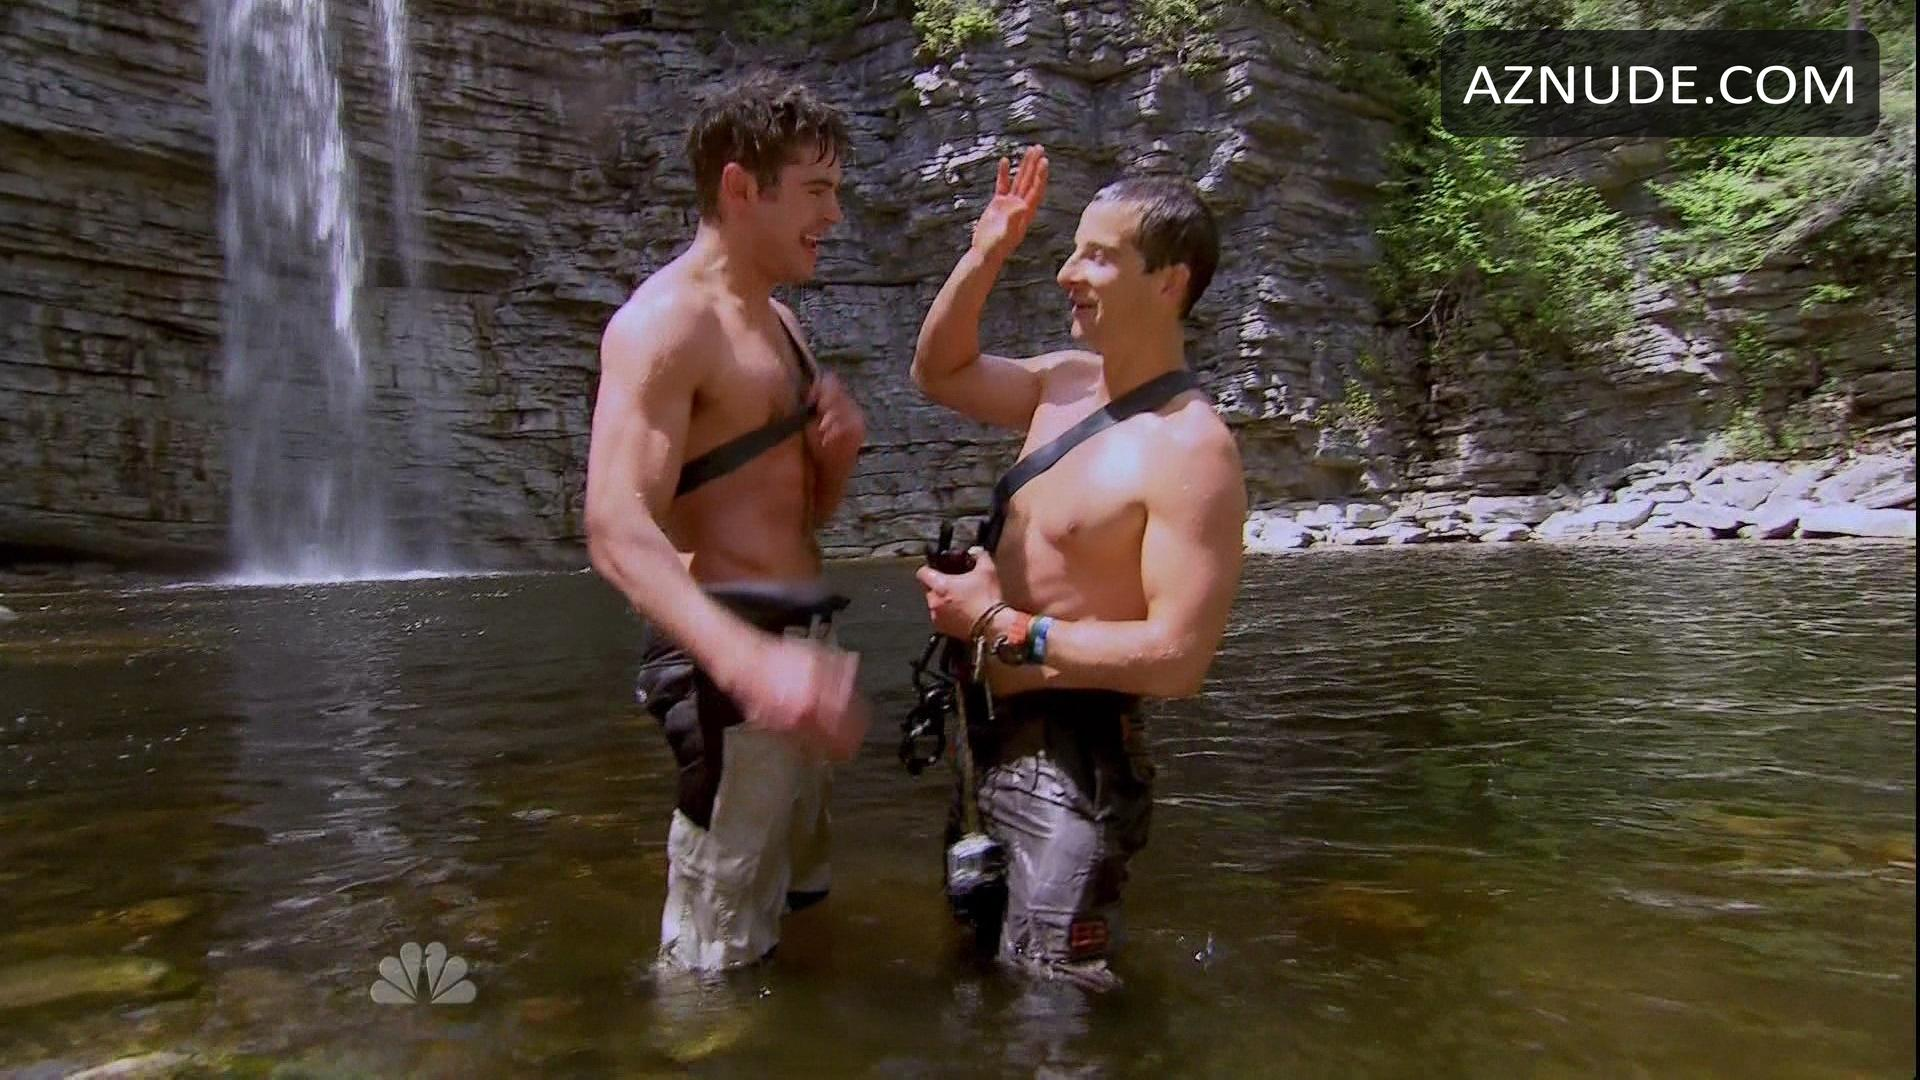 Are Bear grylls naked fakes